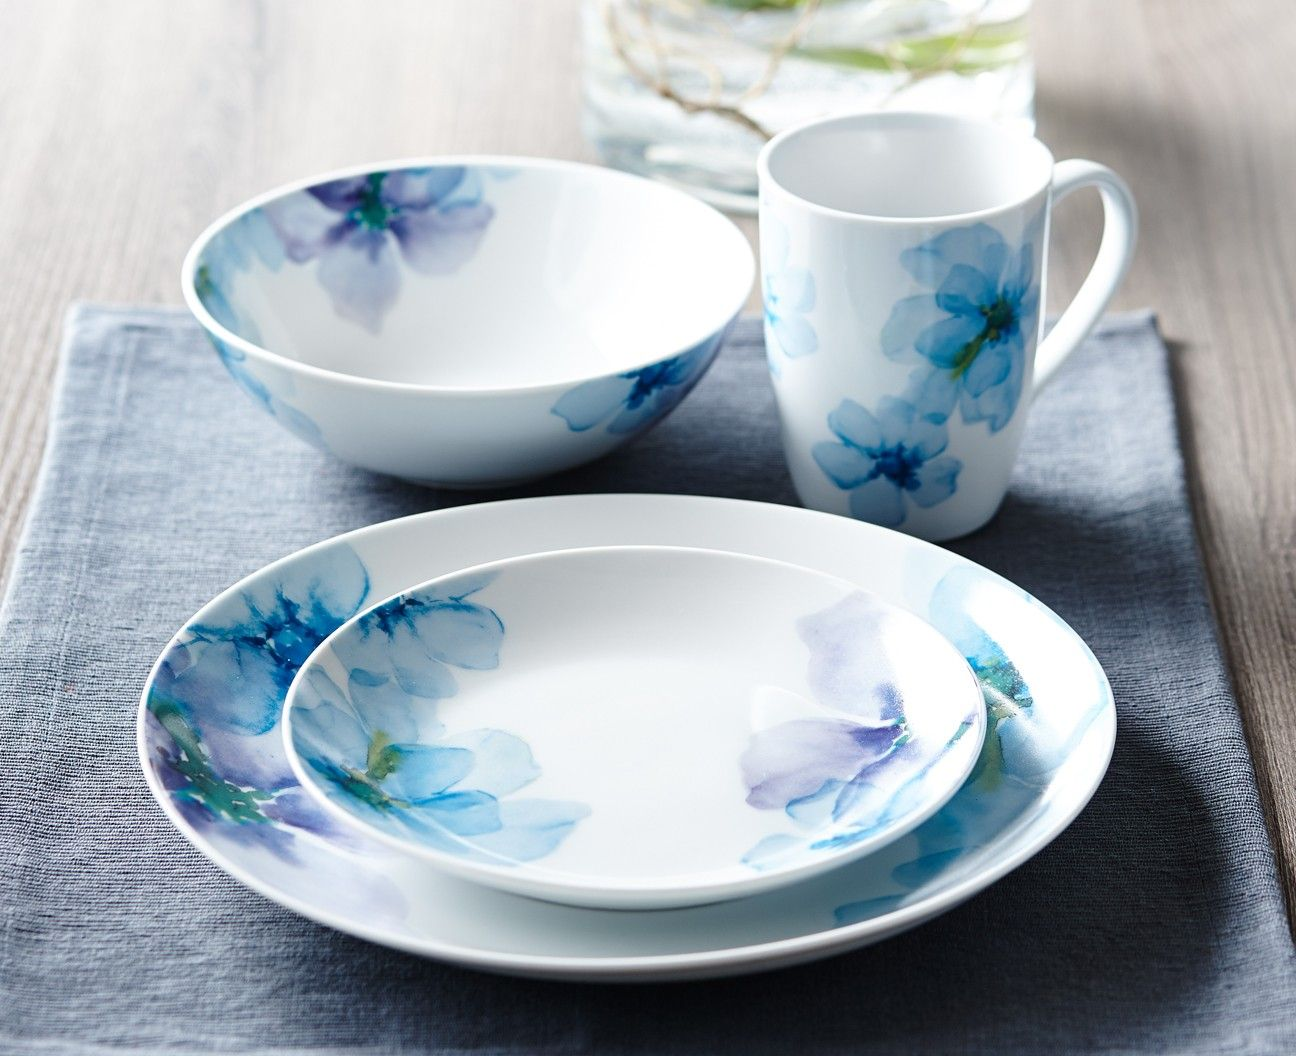 BLUE BLOOM dinnerware set 16 PC (SERVICE FOR 4) | Stokes Inc. Canadau0027s Online Kitchen Store & BLUE BLOOM dinnerware set 16 PC (SERVICE FOR 4) | Stokes Inc ...